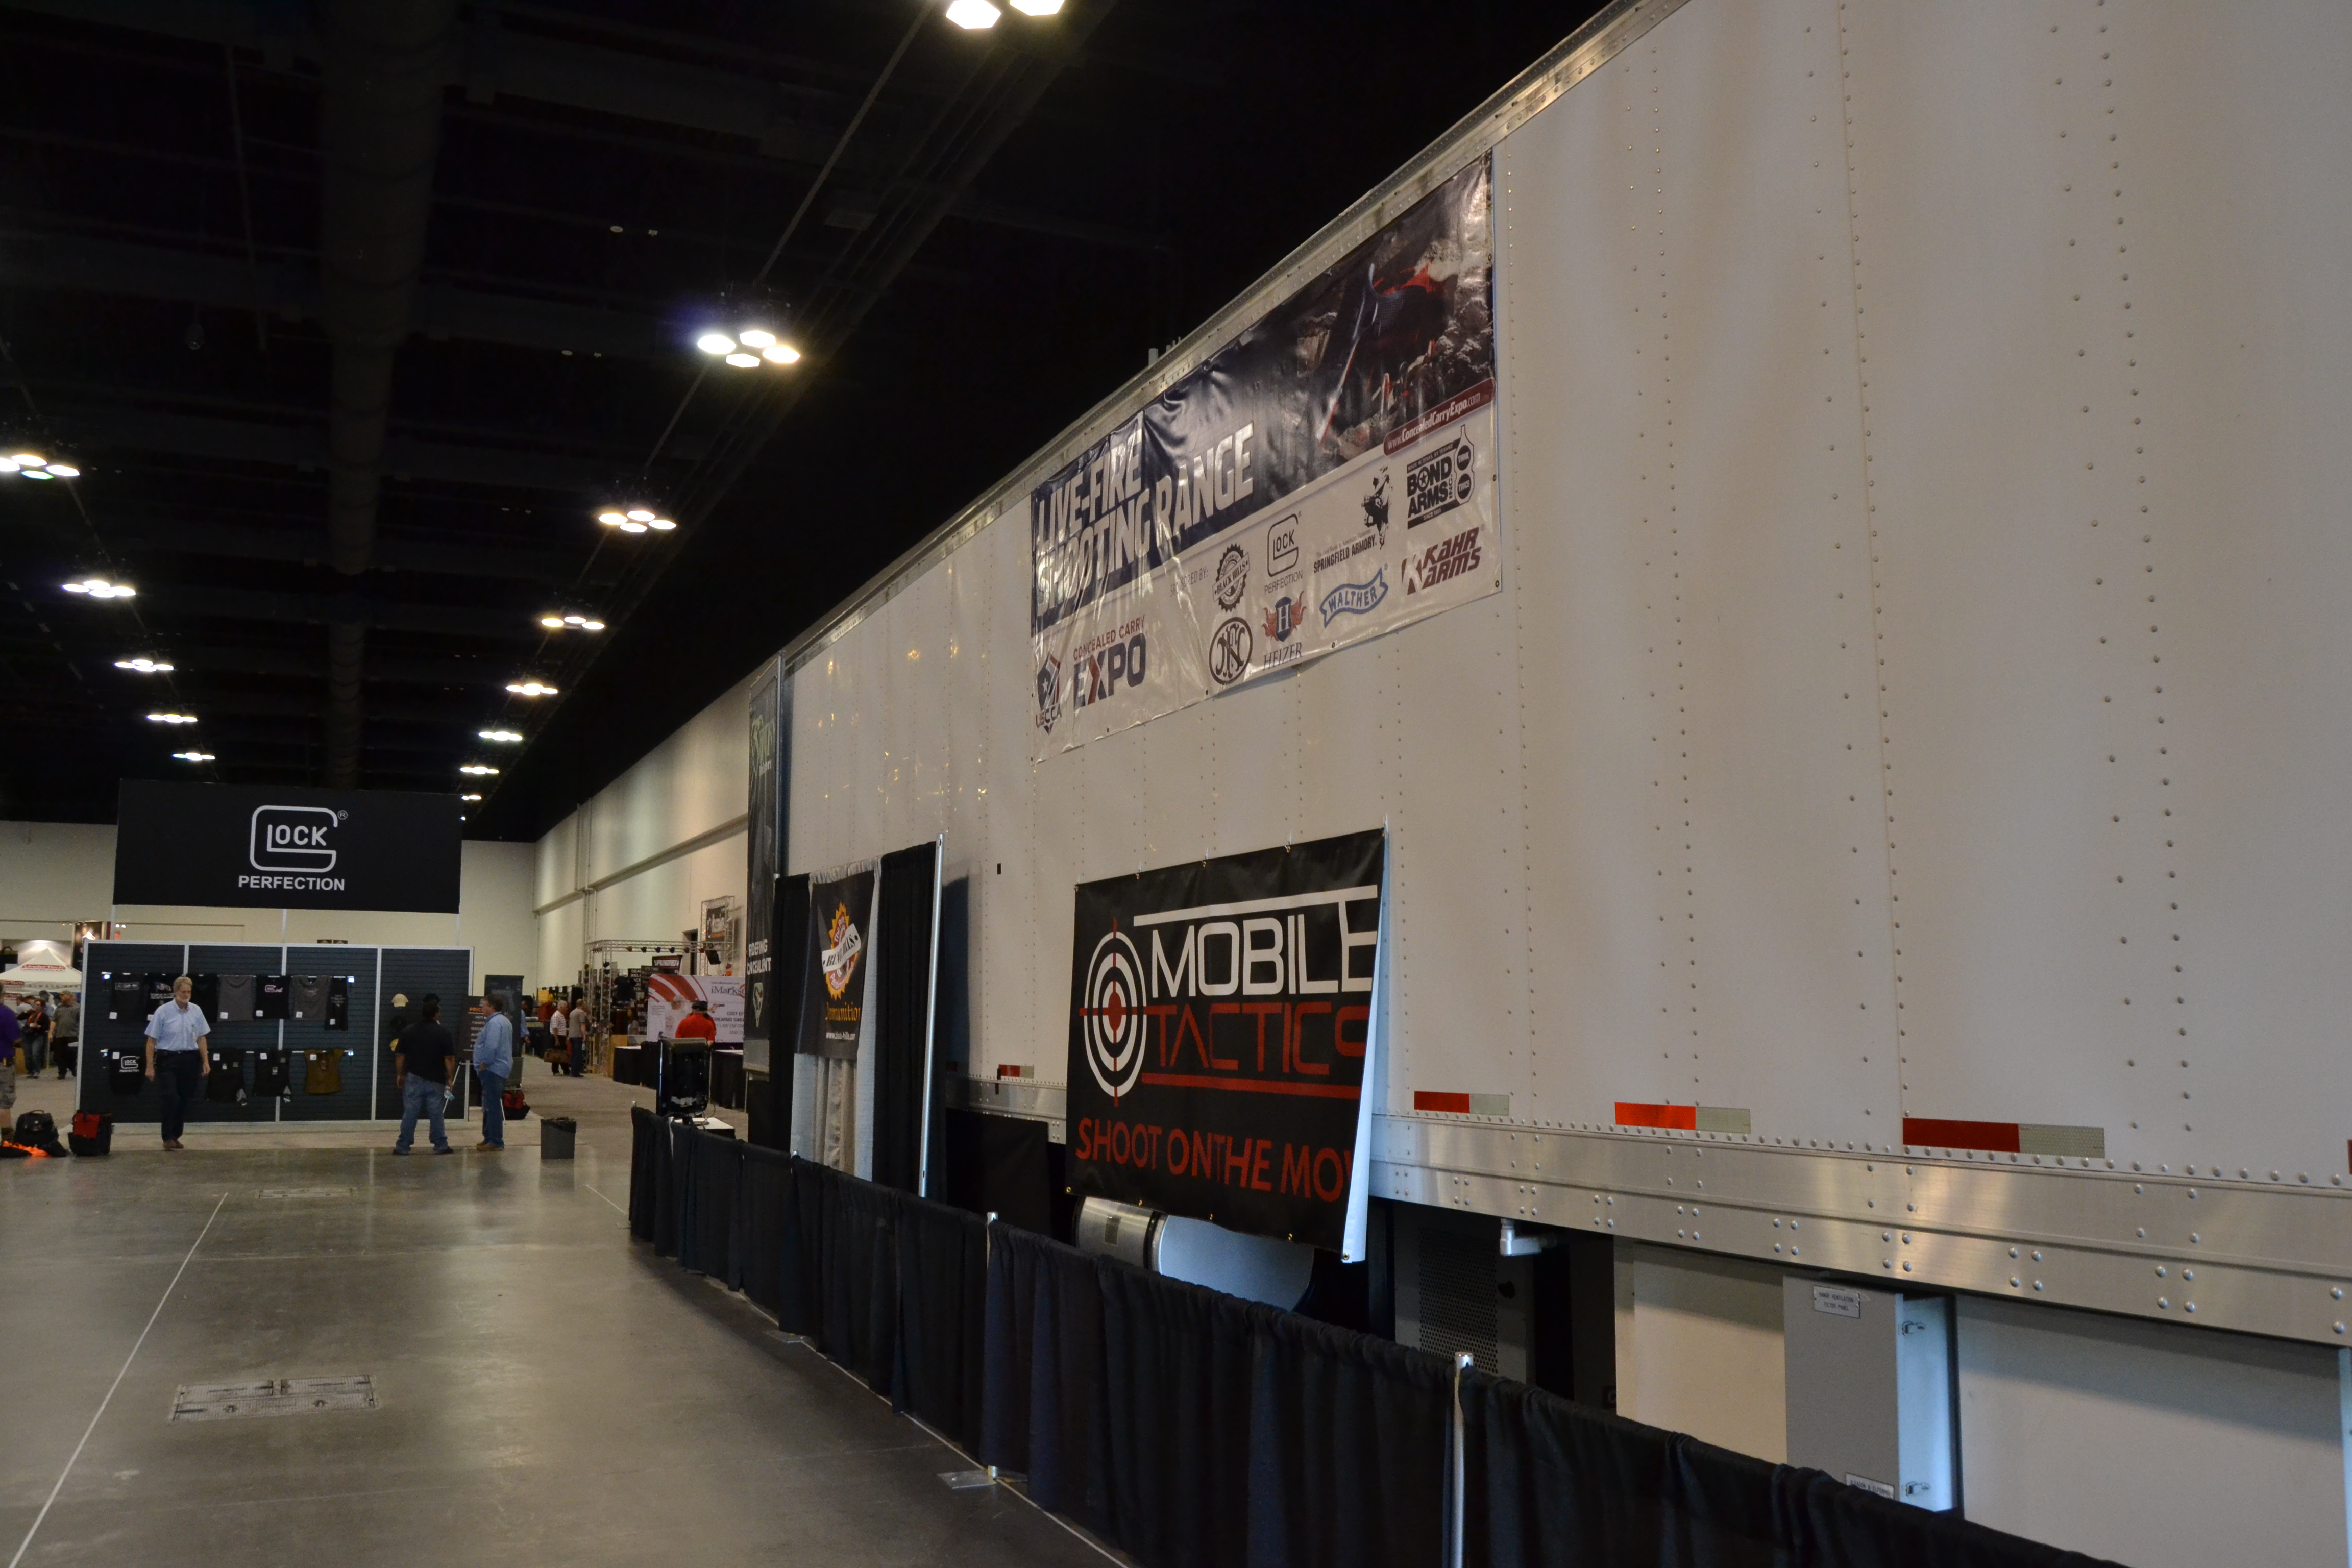 Mobile Tactics – A Mobile Three Lane Gun Range – At the USCCA Concealed Carry Expo